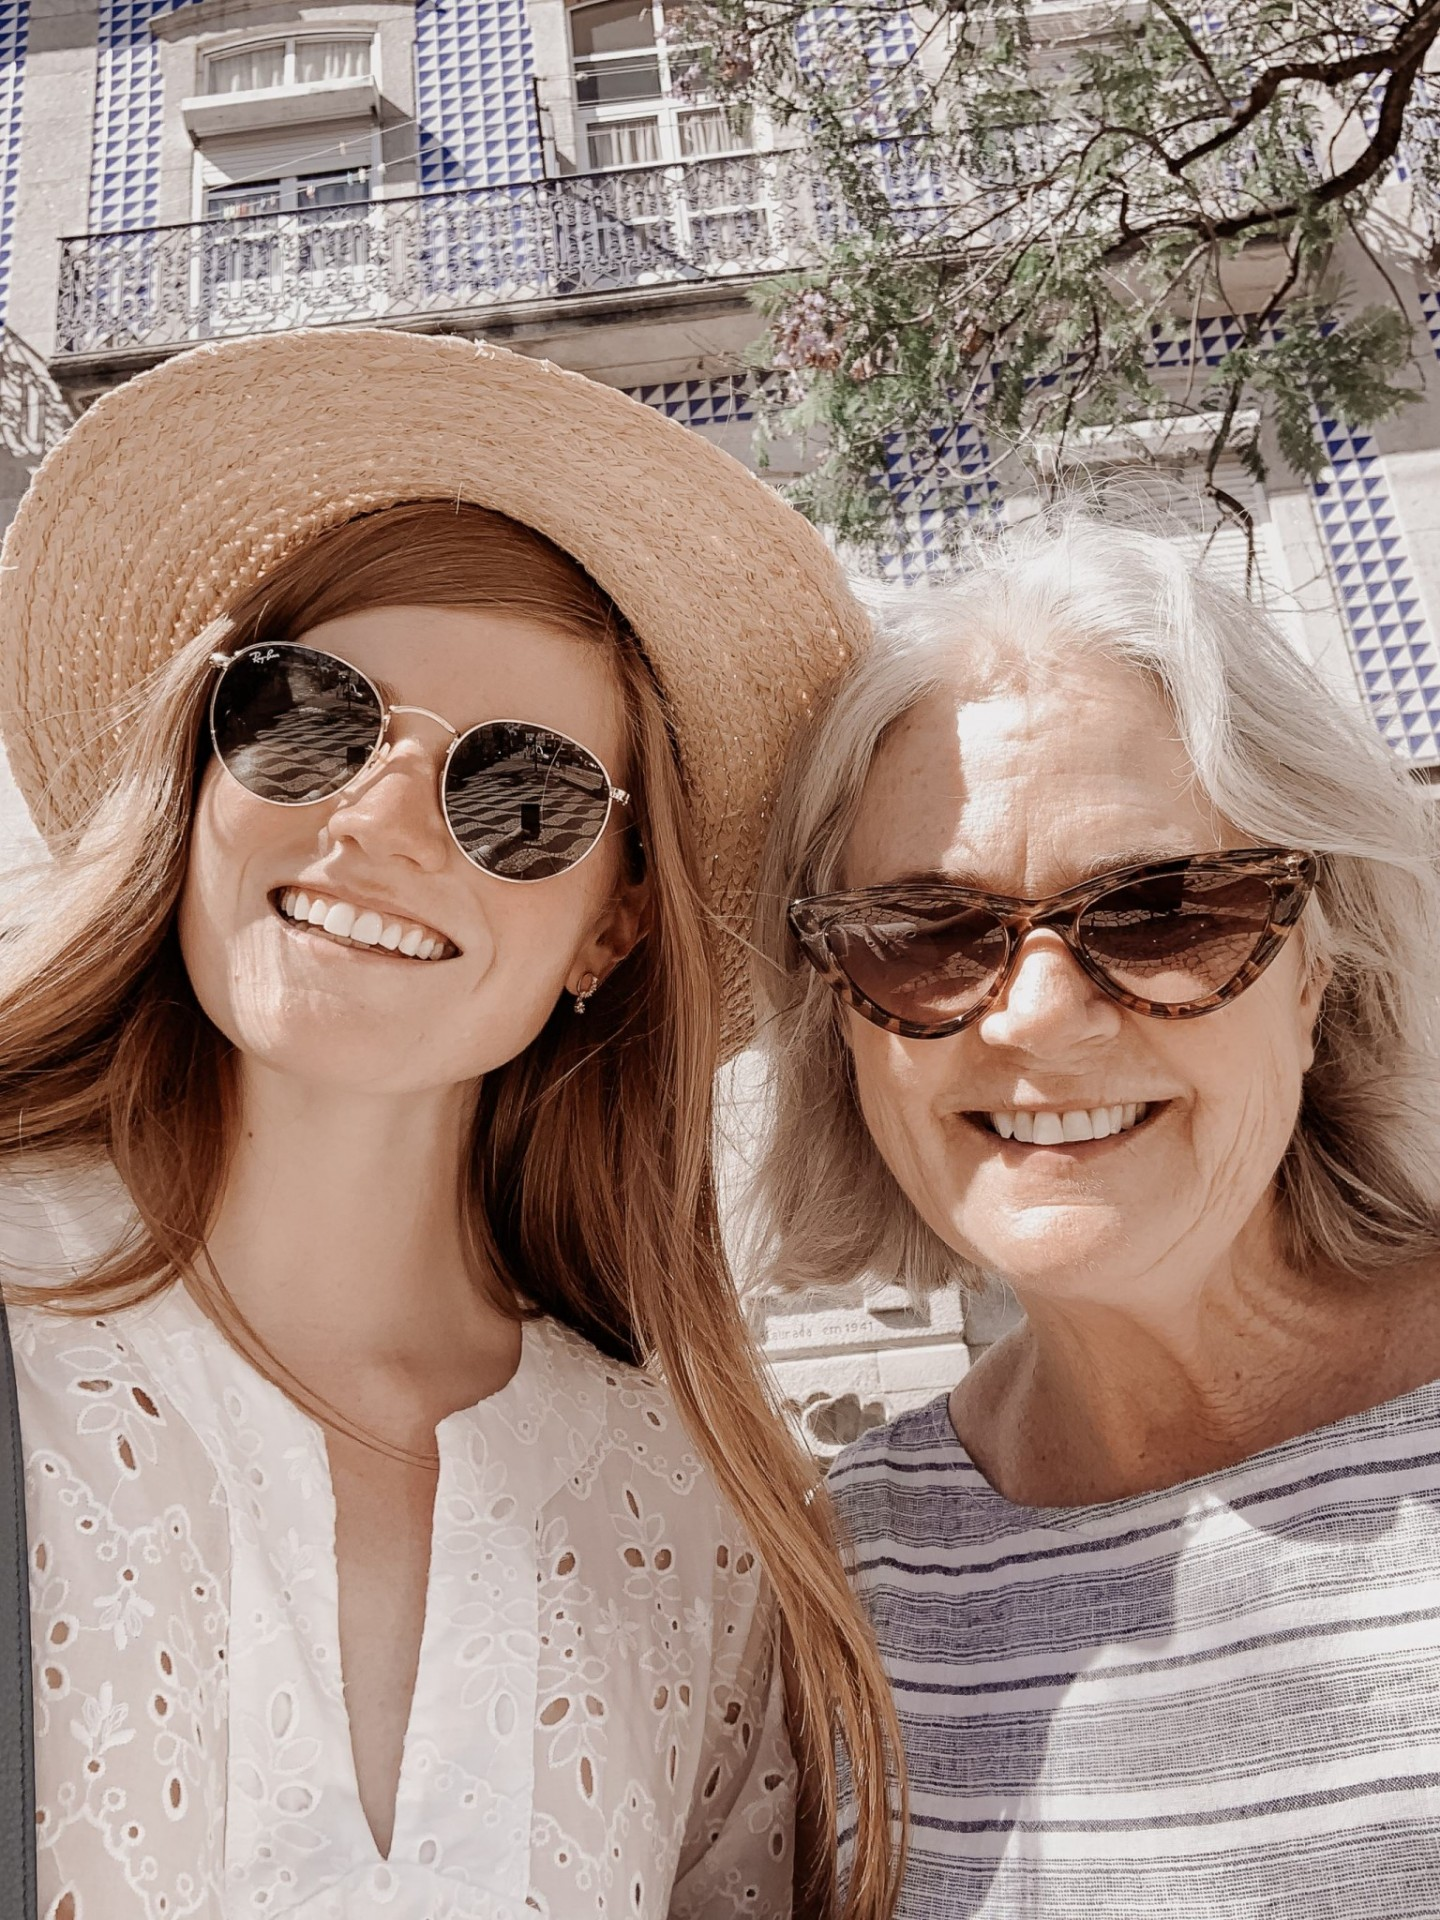 Lifestyle blogger Mollie Moore shares a Porto travel guide | A Porto Portugal Travel Guide by popular Great Britain international travel blogger, Mollie Moore: image of two women standing in front of a blue and white tile building in Porto Portugal.